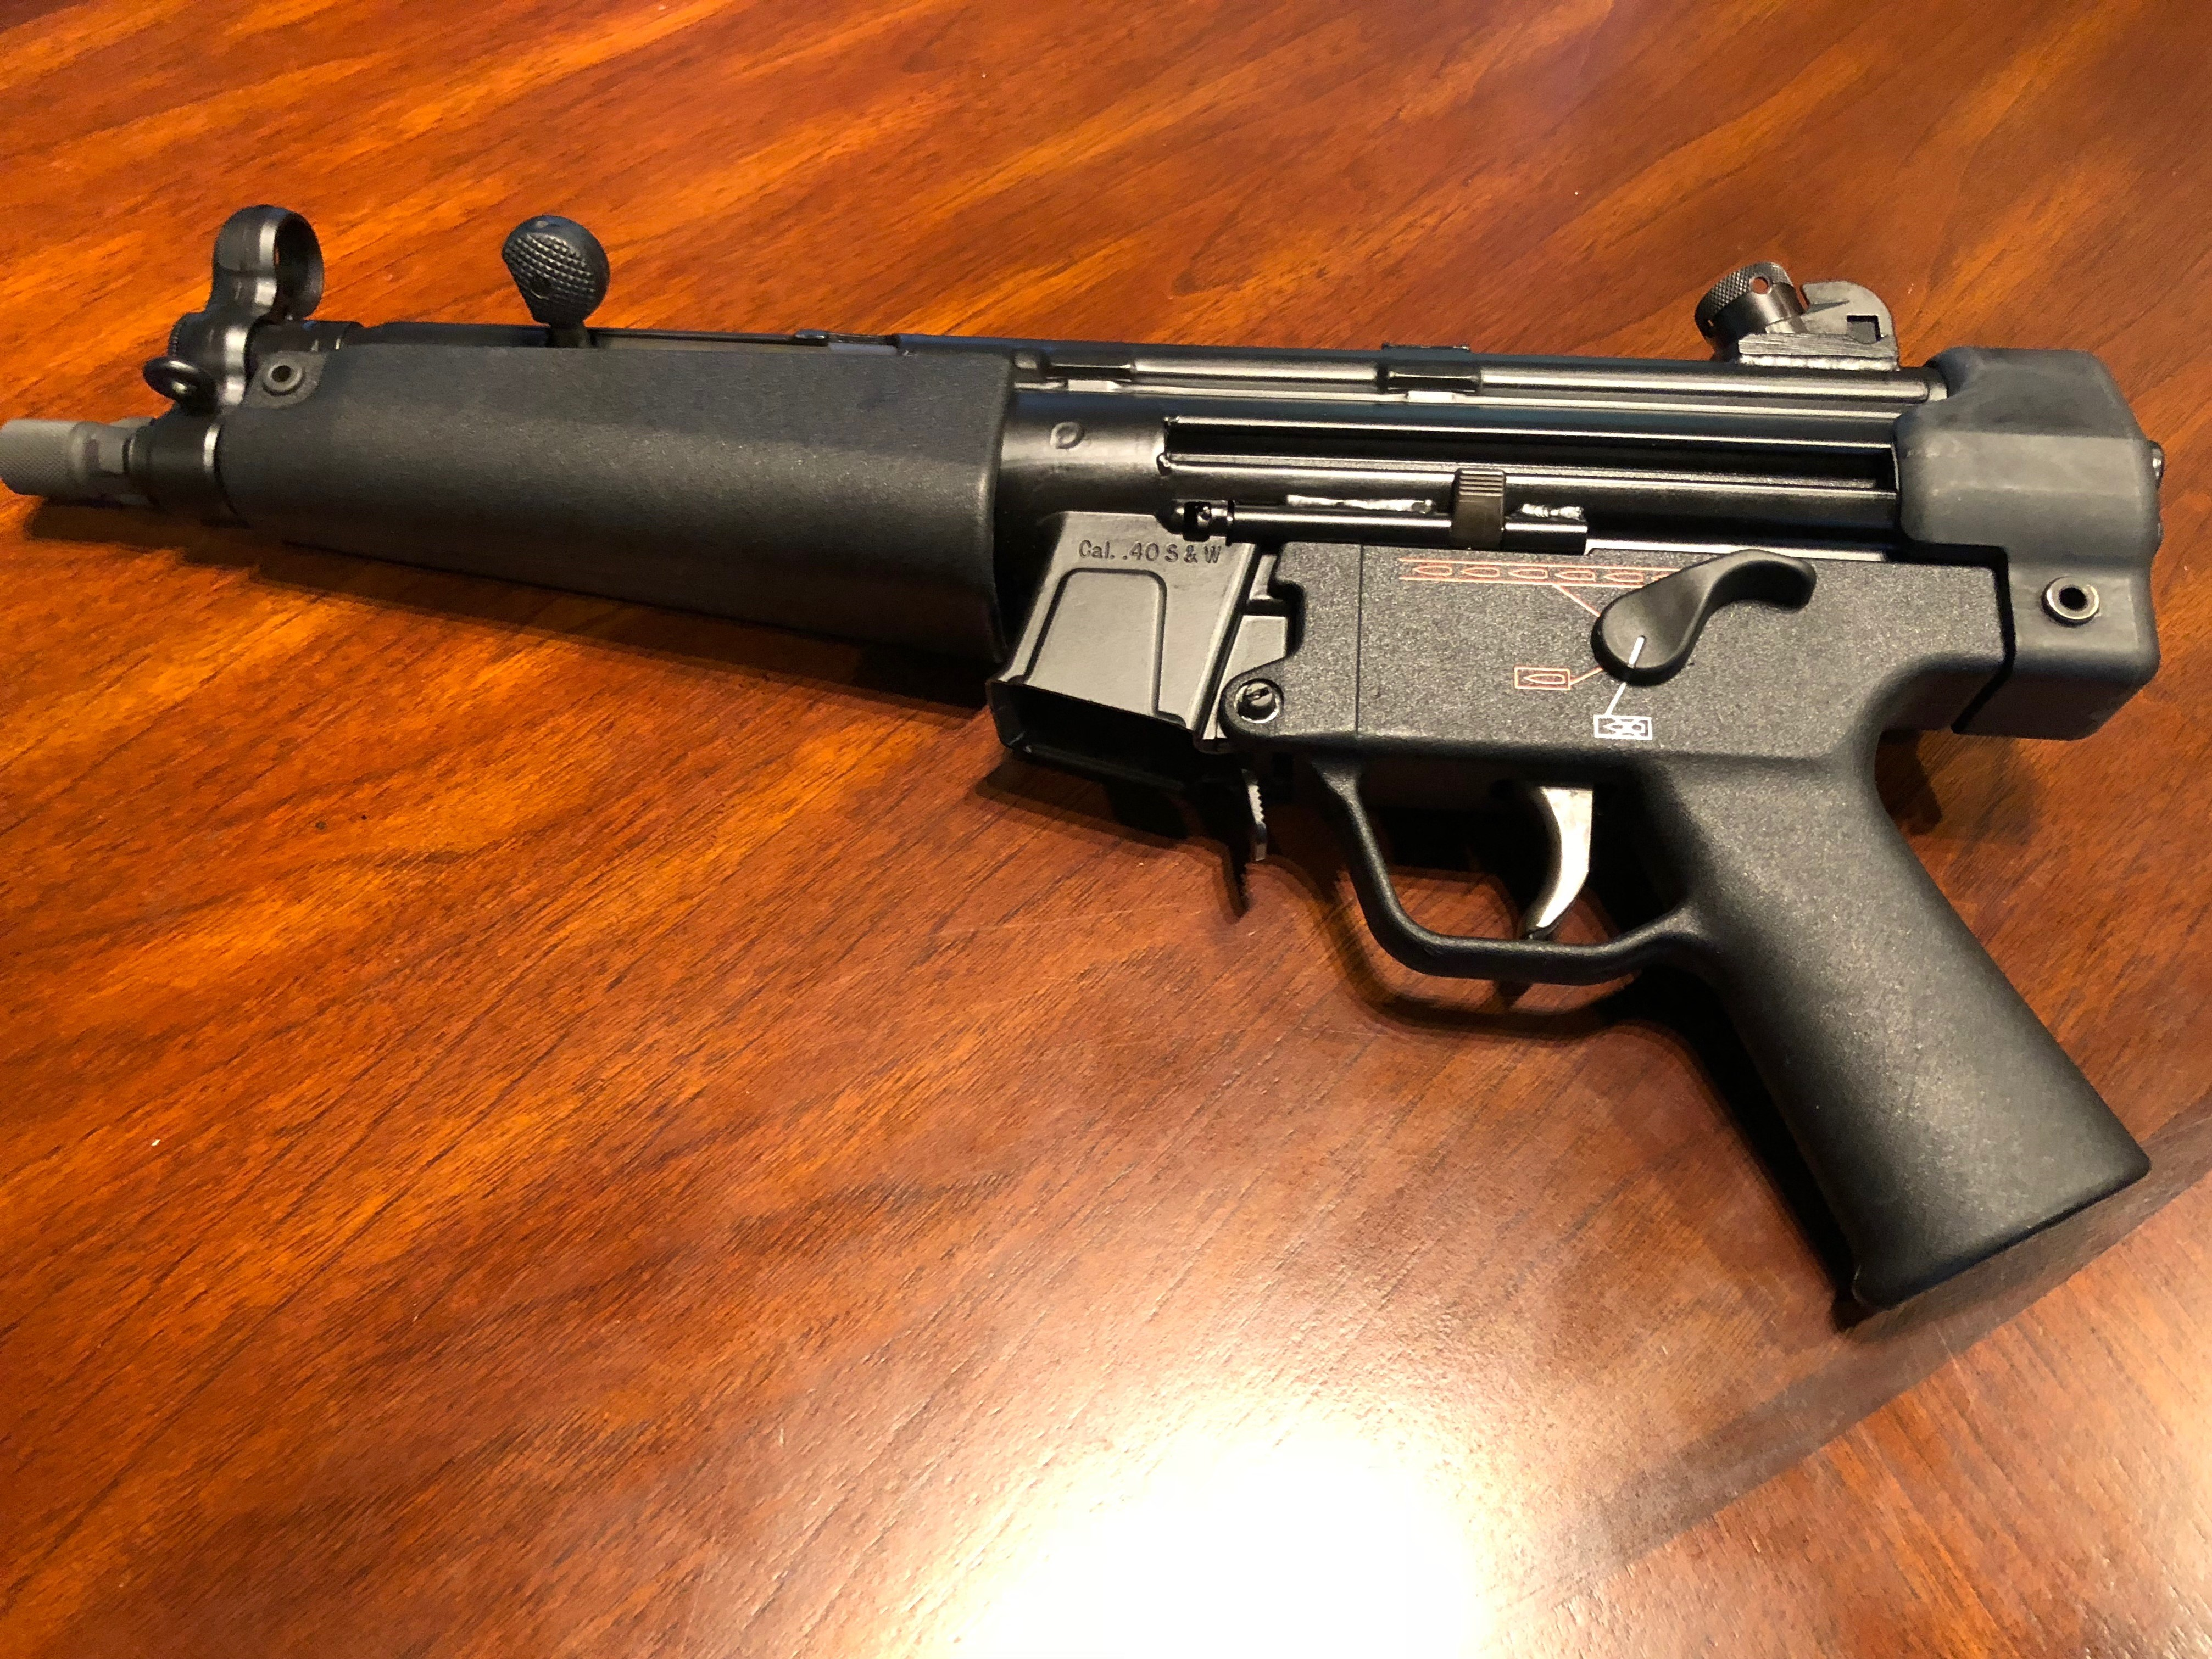 WTS: MP5/40 by Investment Grade Firearms-img_1923.jpg